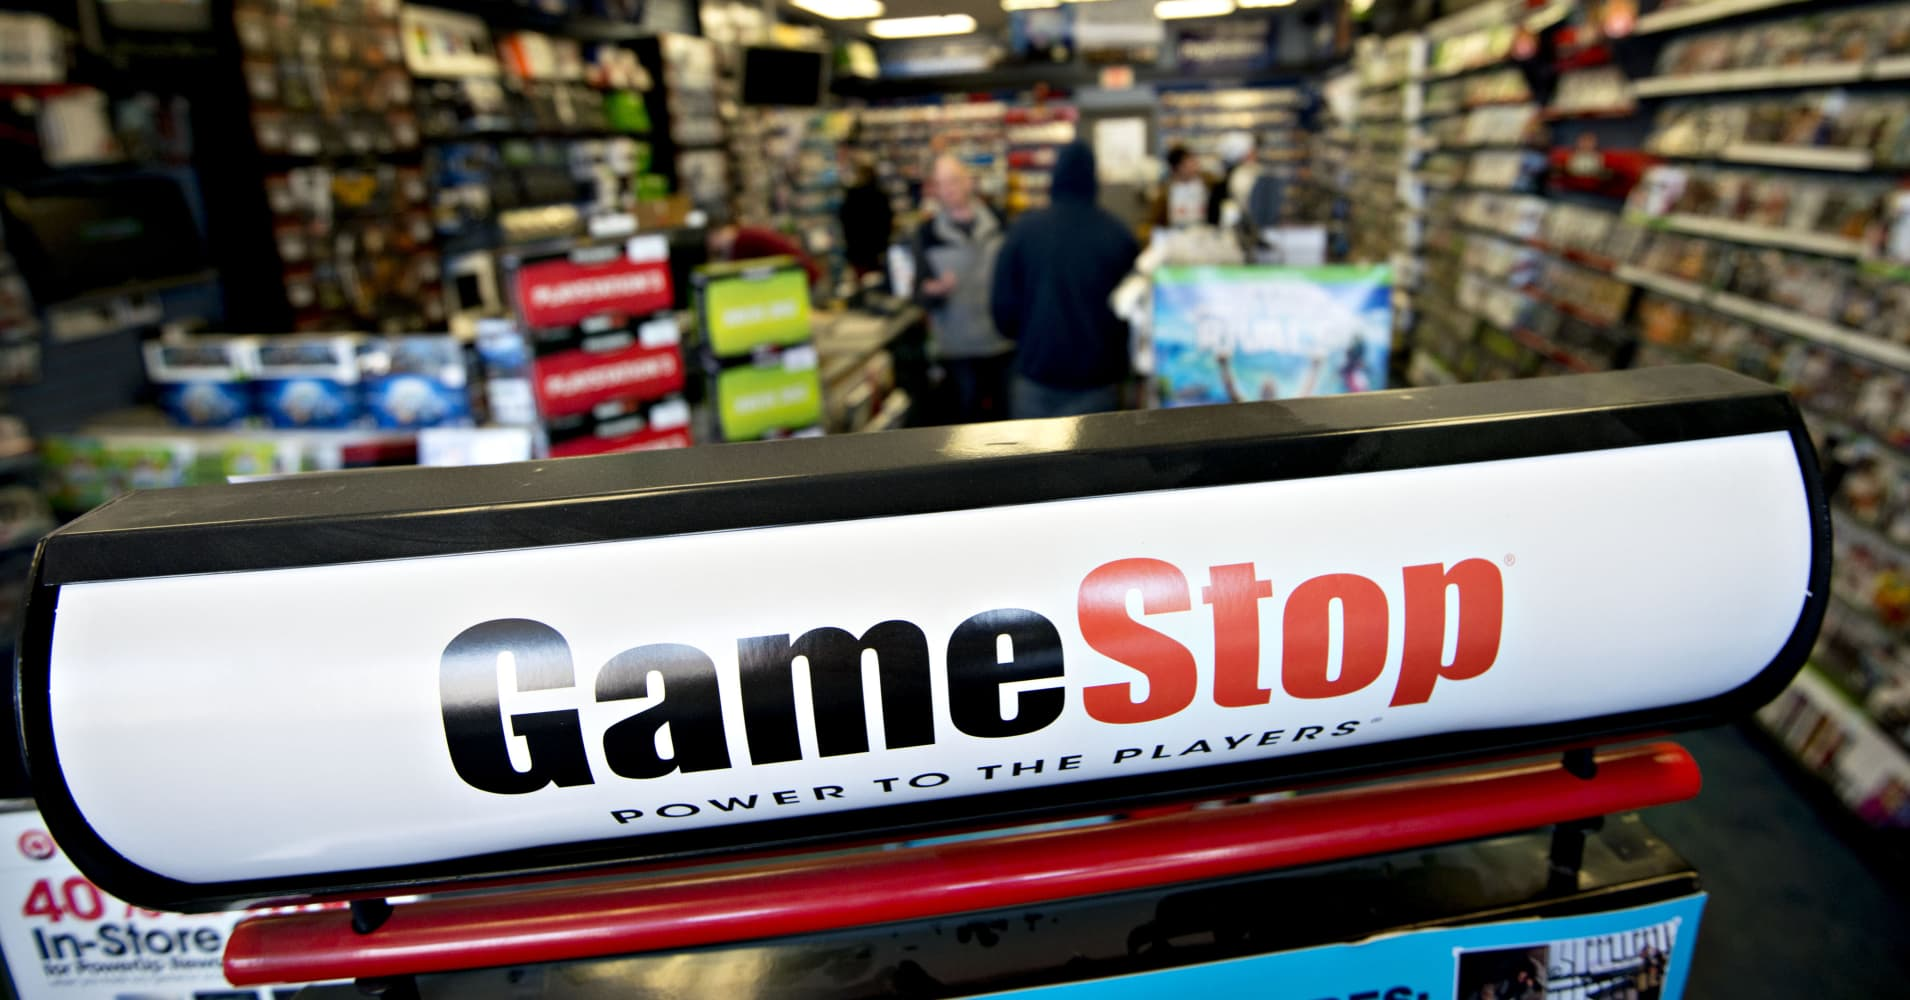 Gamestop Shares Fall After Lowering Guidance Cramer Says Strategy